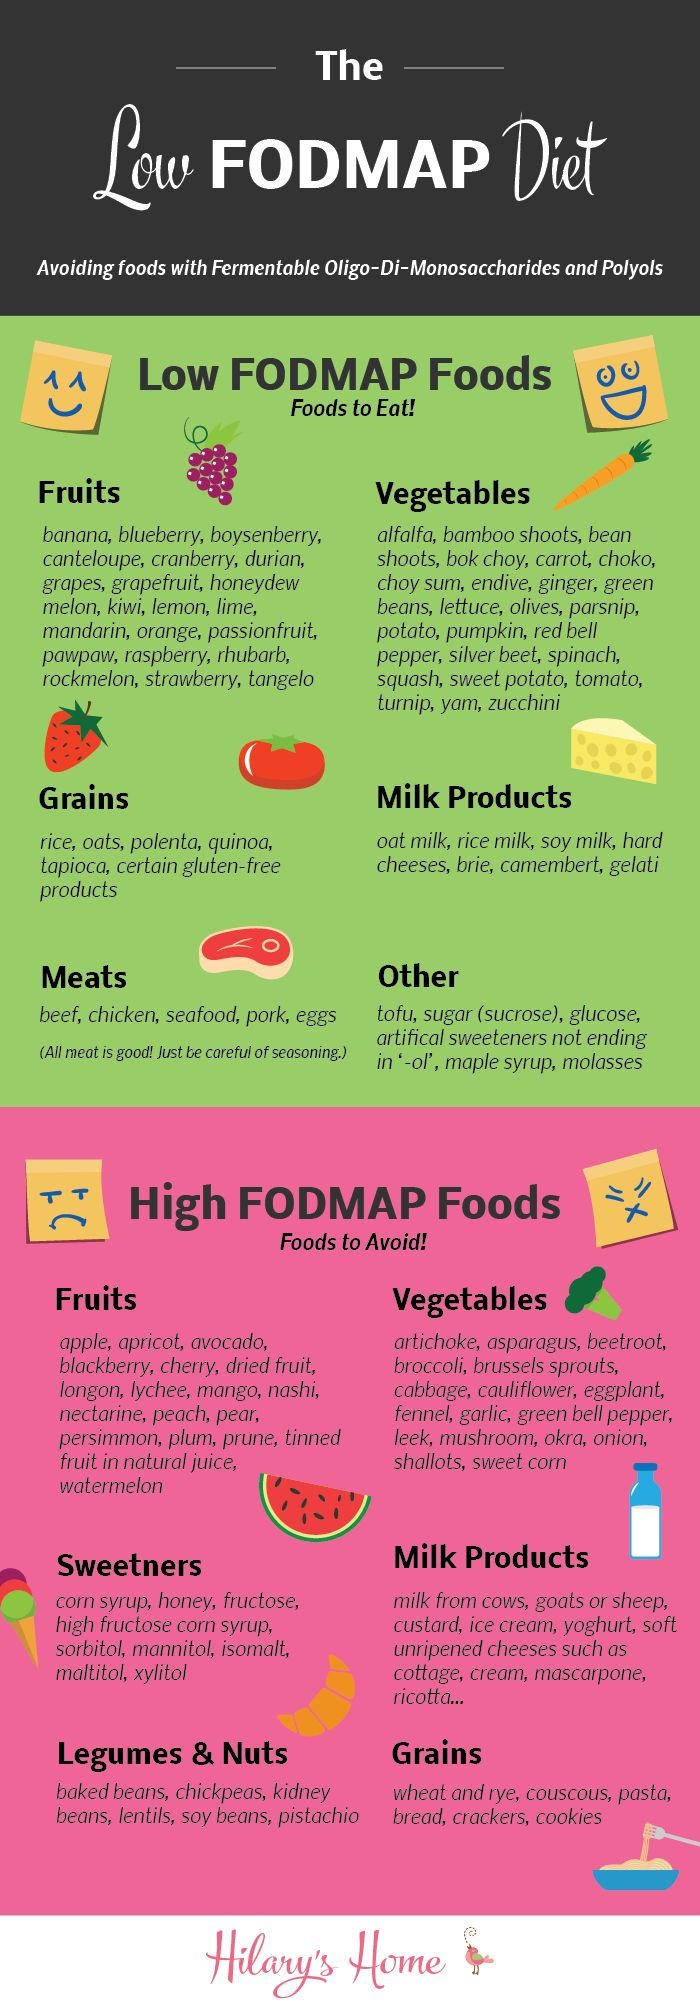 Usually when I tell people about the low FODMAP diet, they have no idea what I'm talking about. If I say I'm on the Paleo diet, or a gluten free diet, people know what I'm talking about. Not with a low FODMAP diet, which is a pity, because it is